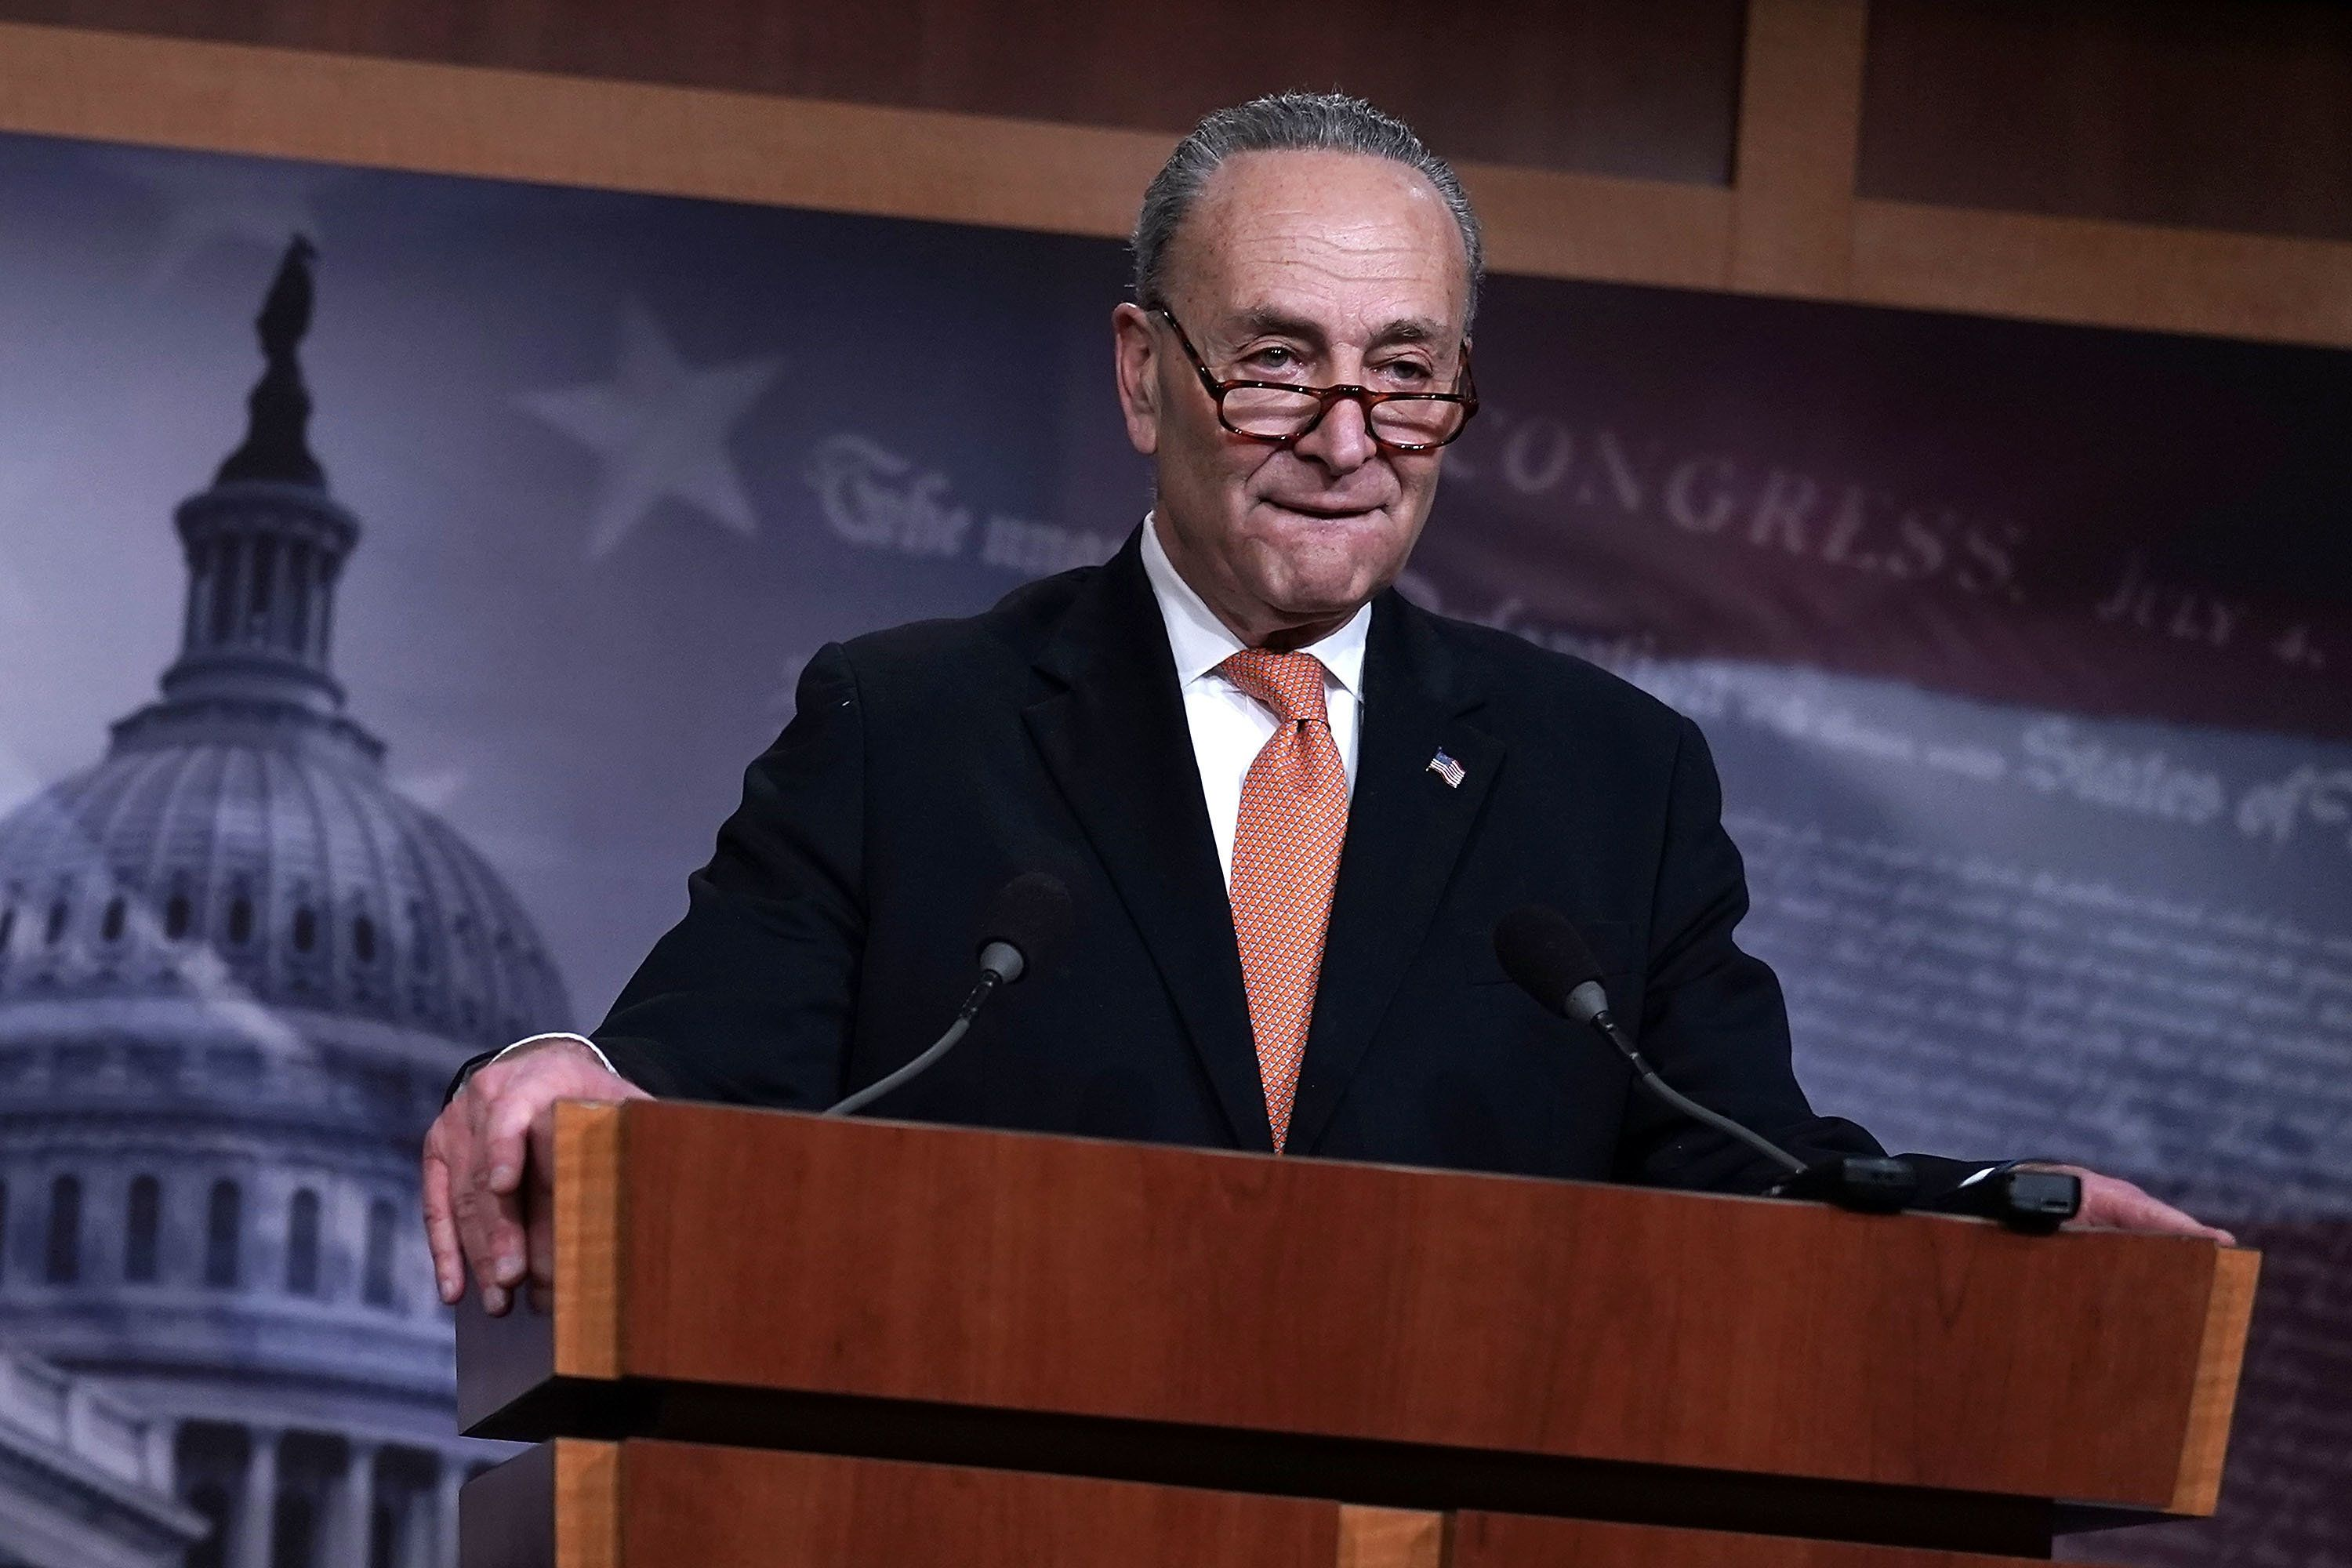 Senate Minority Leader Chuck Schumer (D-N.Y.)said in a speech that he had expressed openness to funding a border wall d